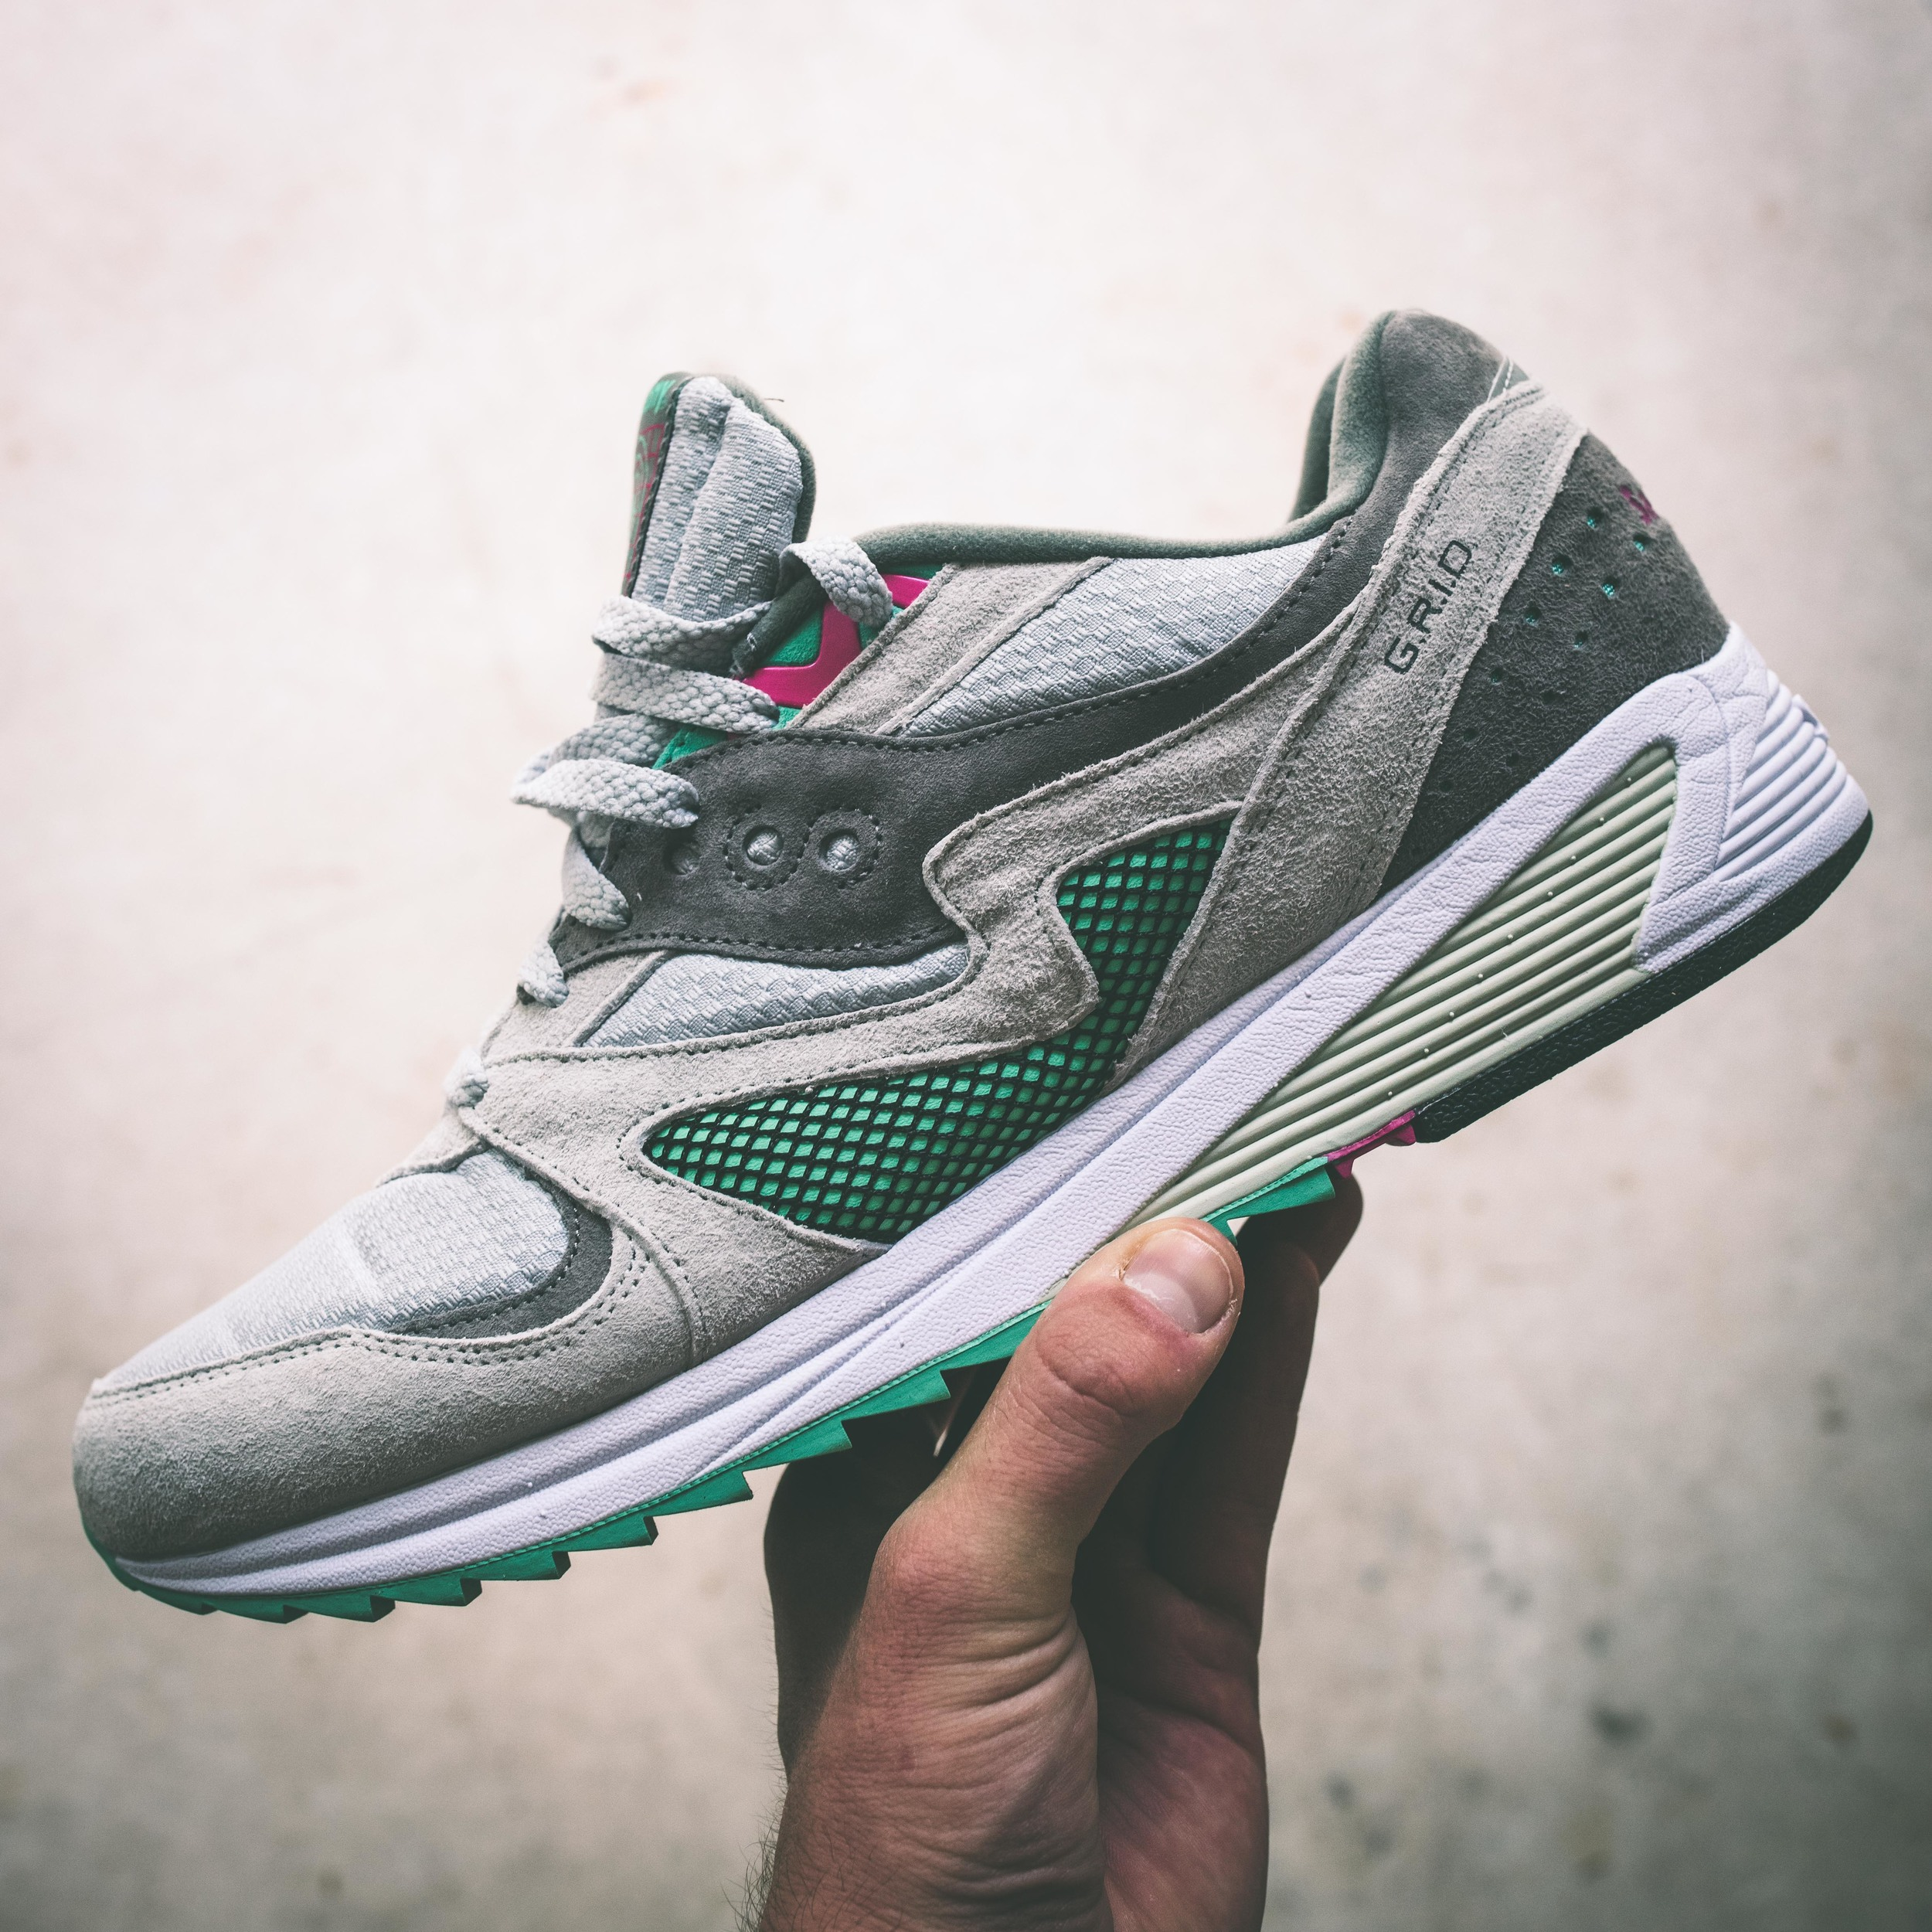 Buy Saucony Grid 8000 CL Shoes Light Grey Green